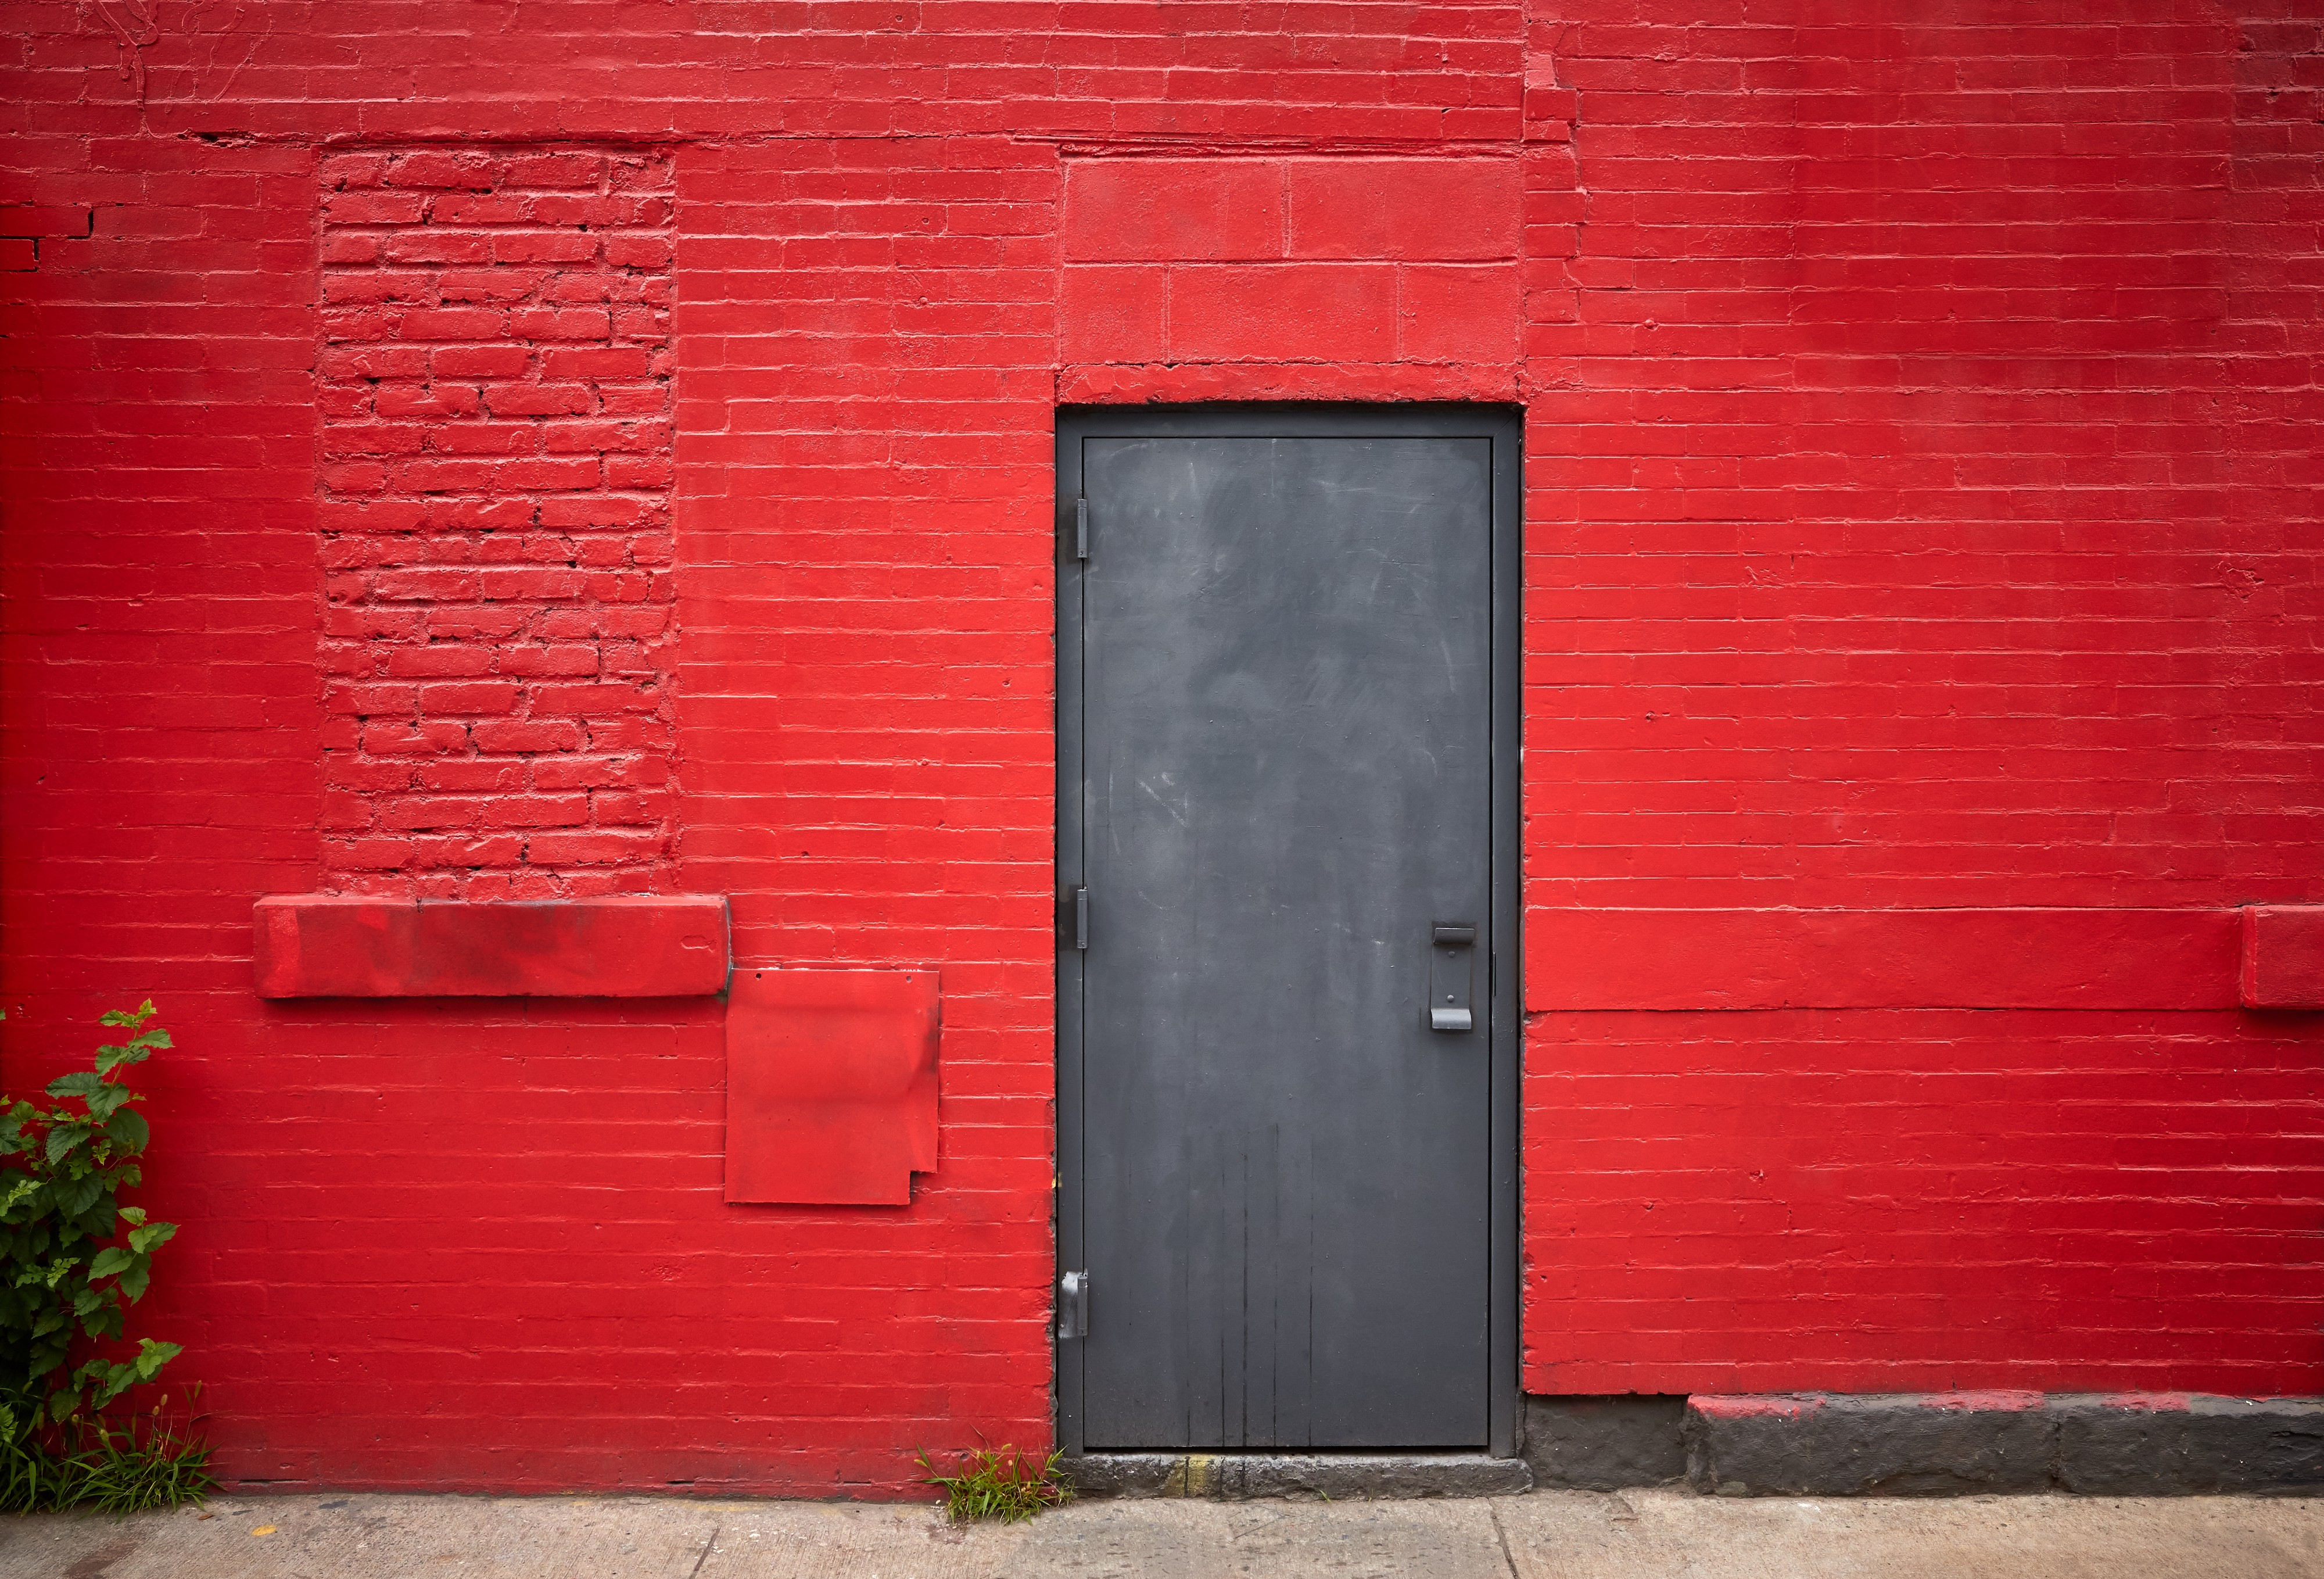 A dark door stands closed in a bright red brick wall.